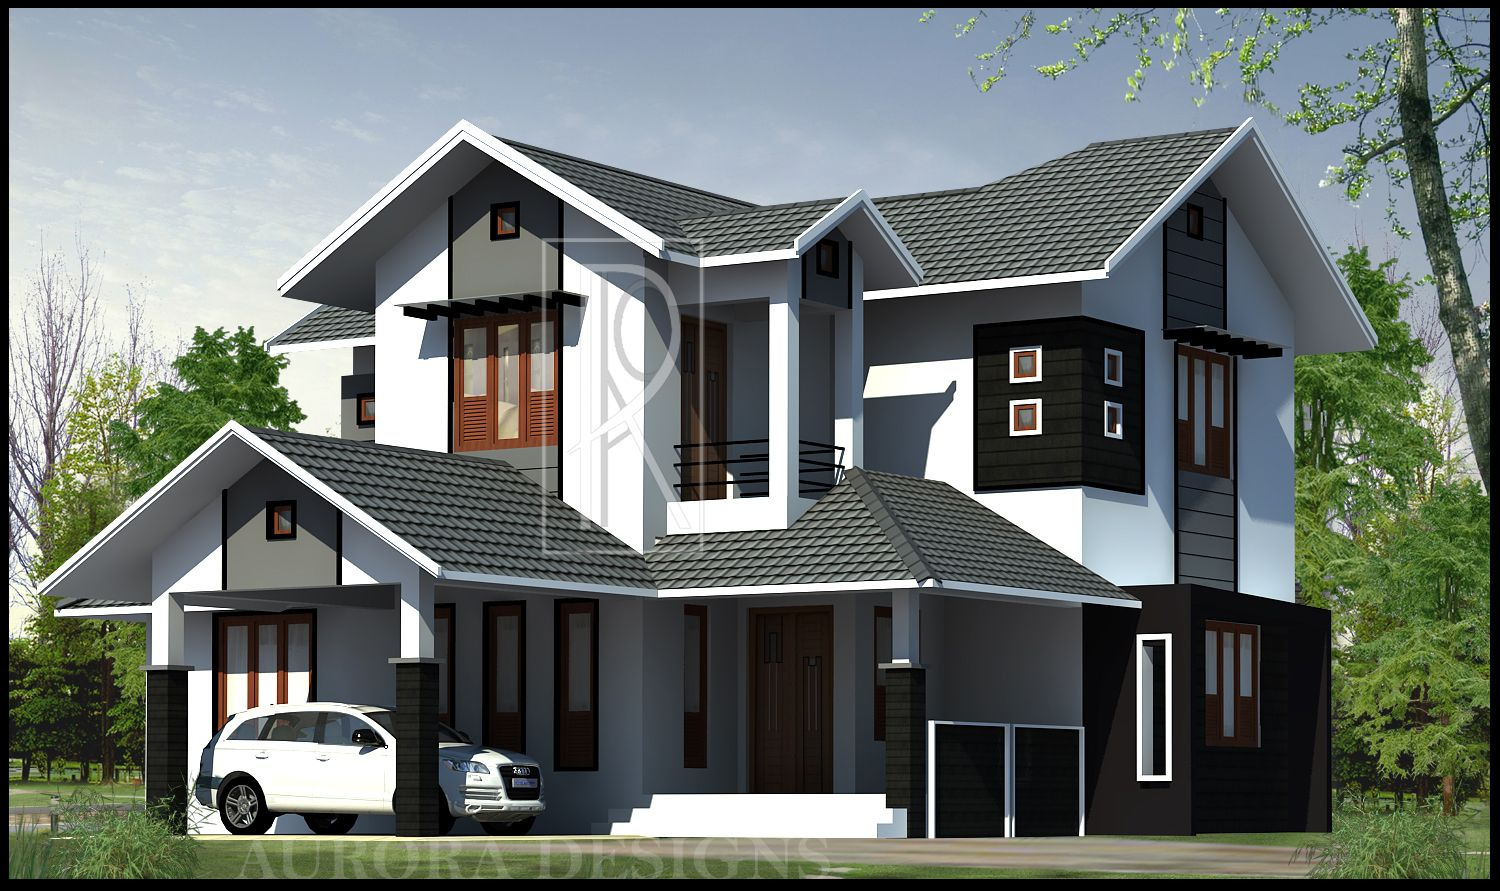 Architecture Design Kerala Model plain architecture design kerala model nalukettu house plan and